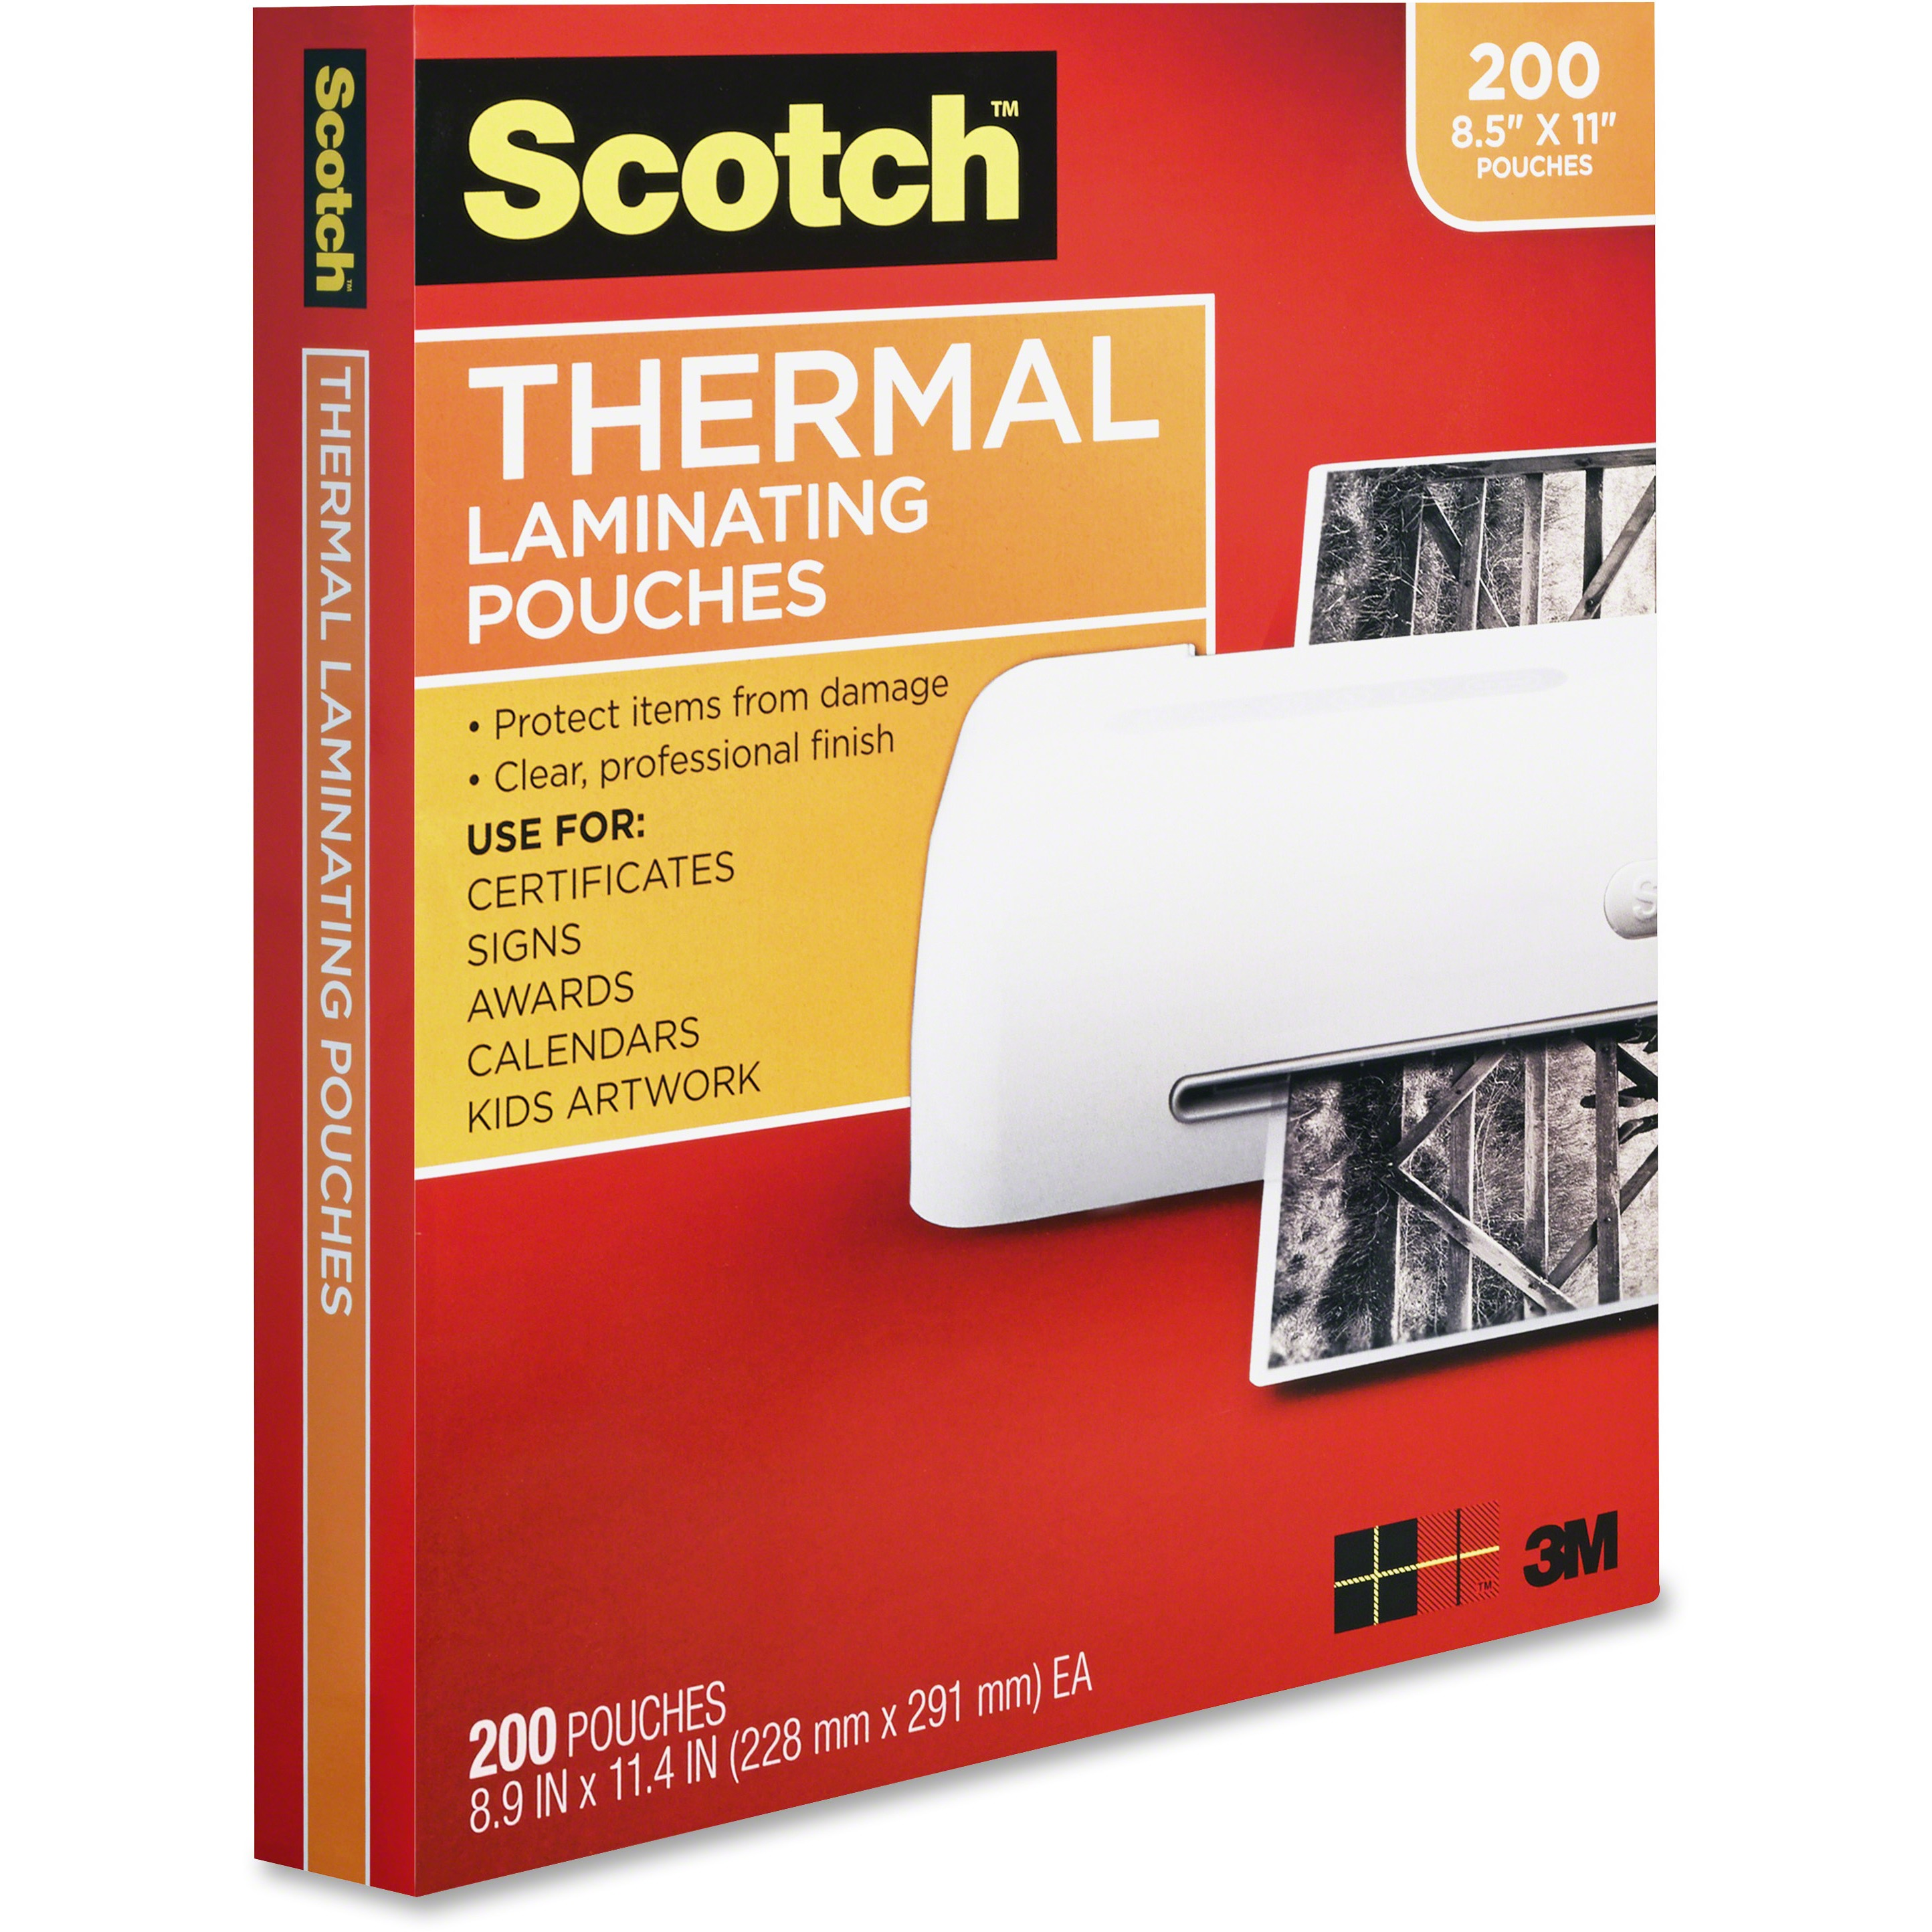 Scotch Thermal Laminating Pouches 200 pack, Letter Size, 9.5in 11.5in., 3 mil thickness, 200 Pouches per Pack